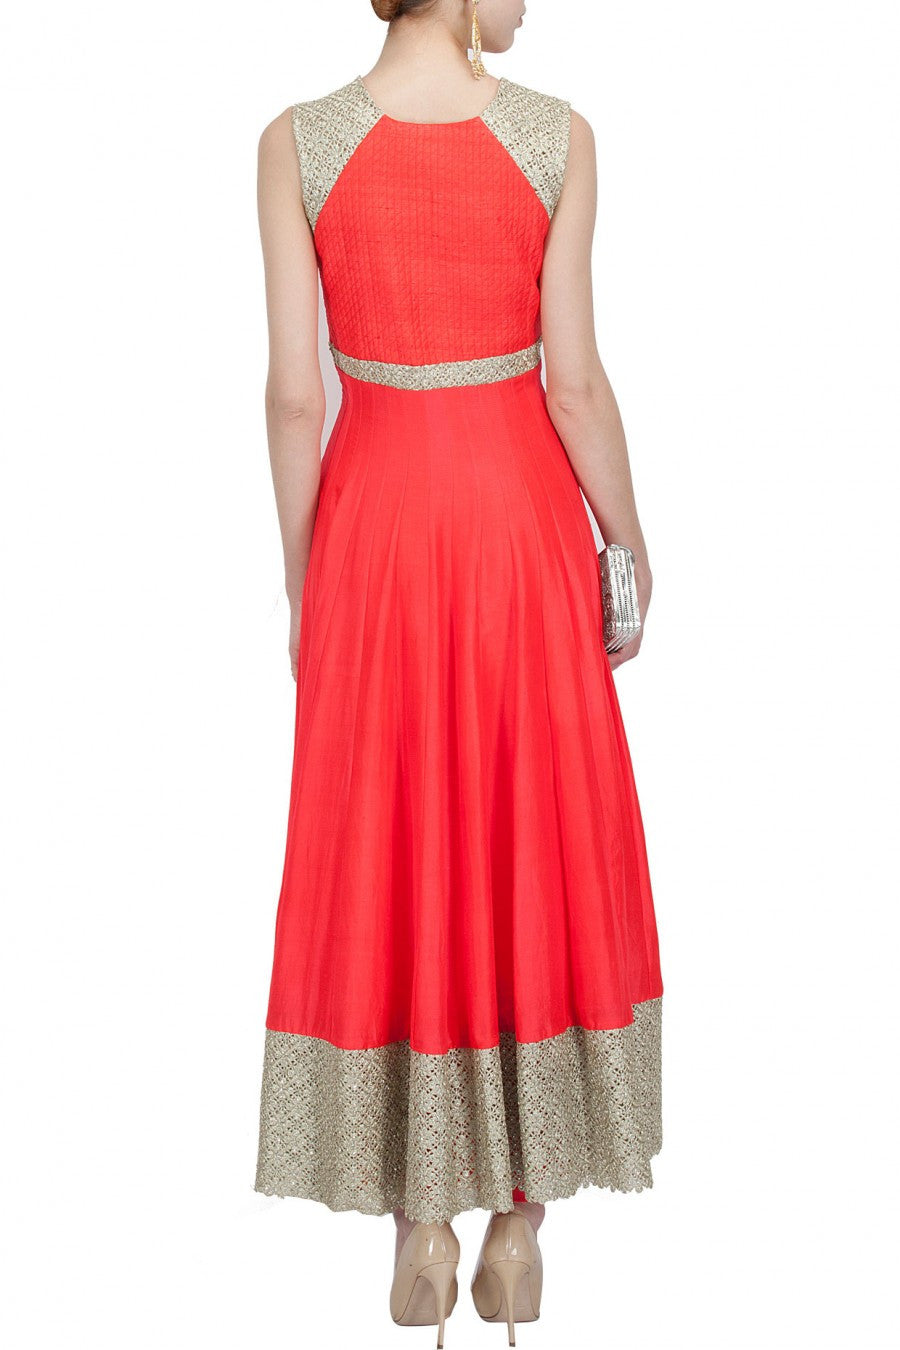 Red anarkali salwar kameez